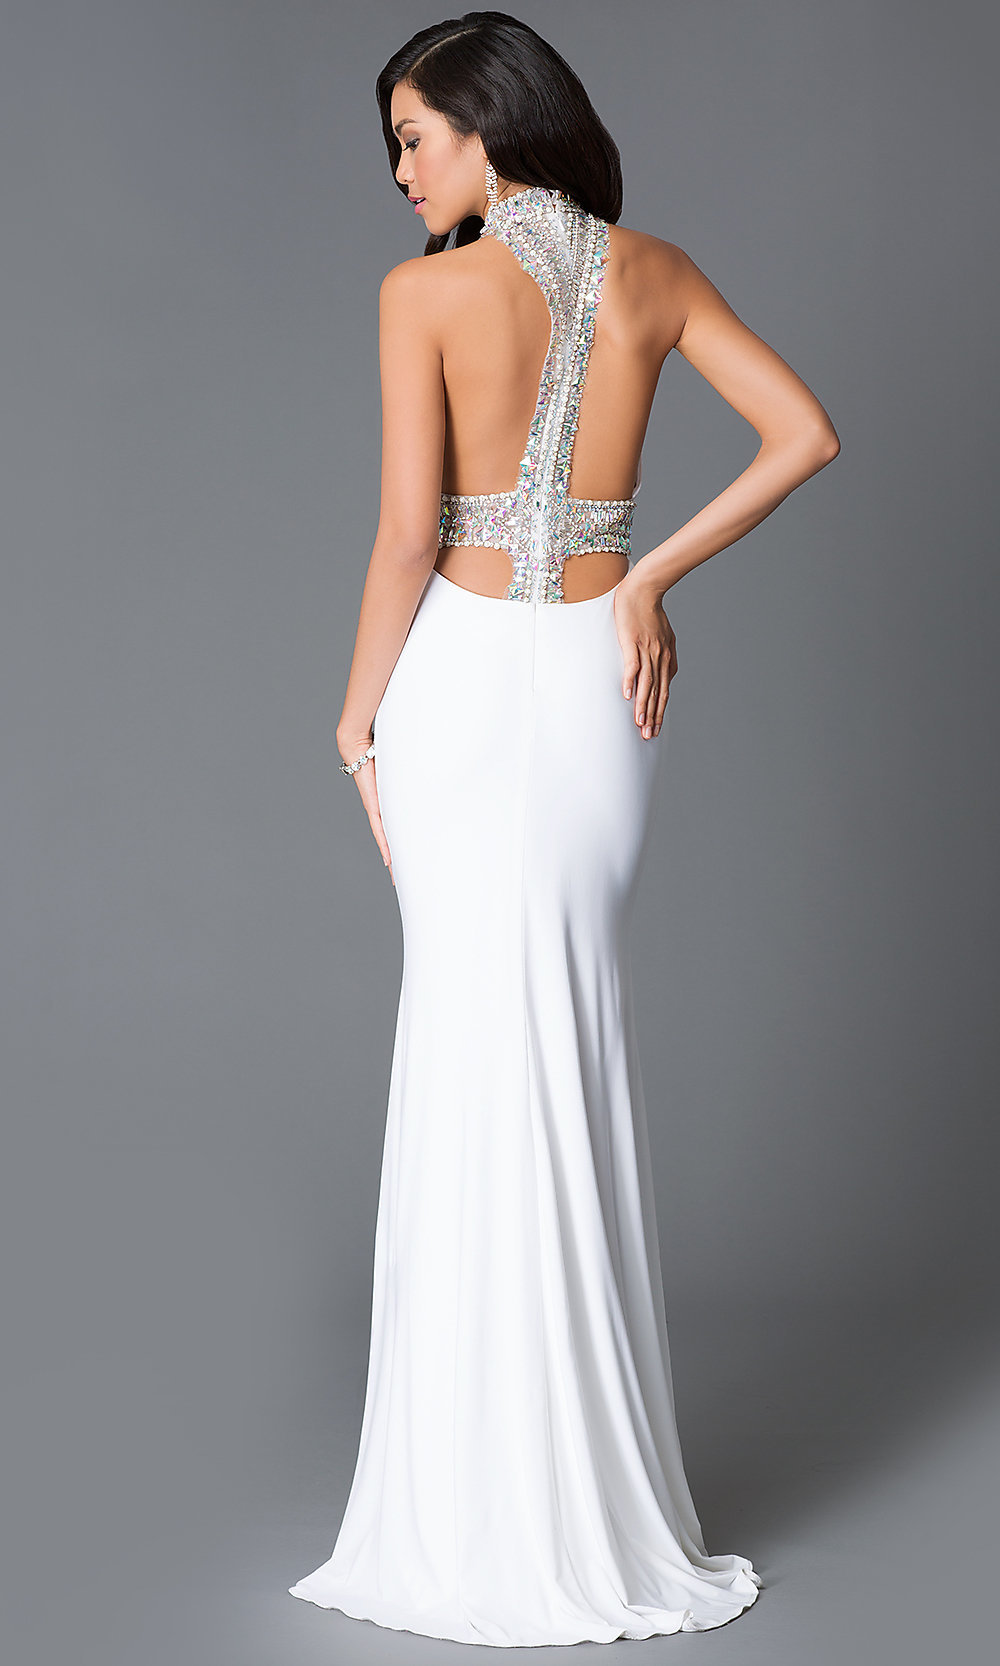 Long JVN by Jovani Open Back Prom Dress - PromGirl